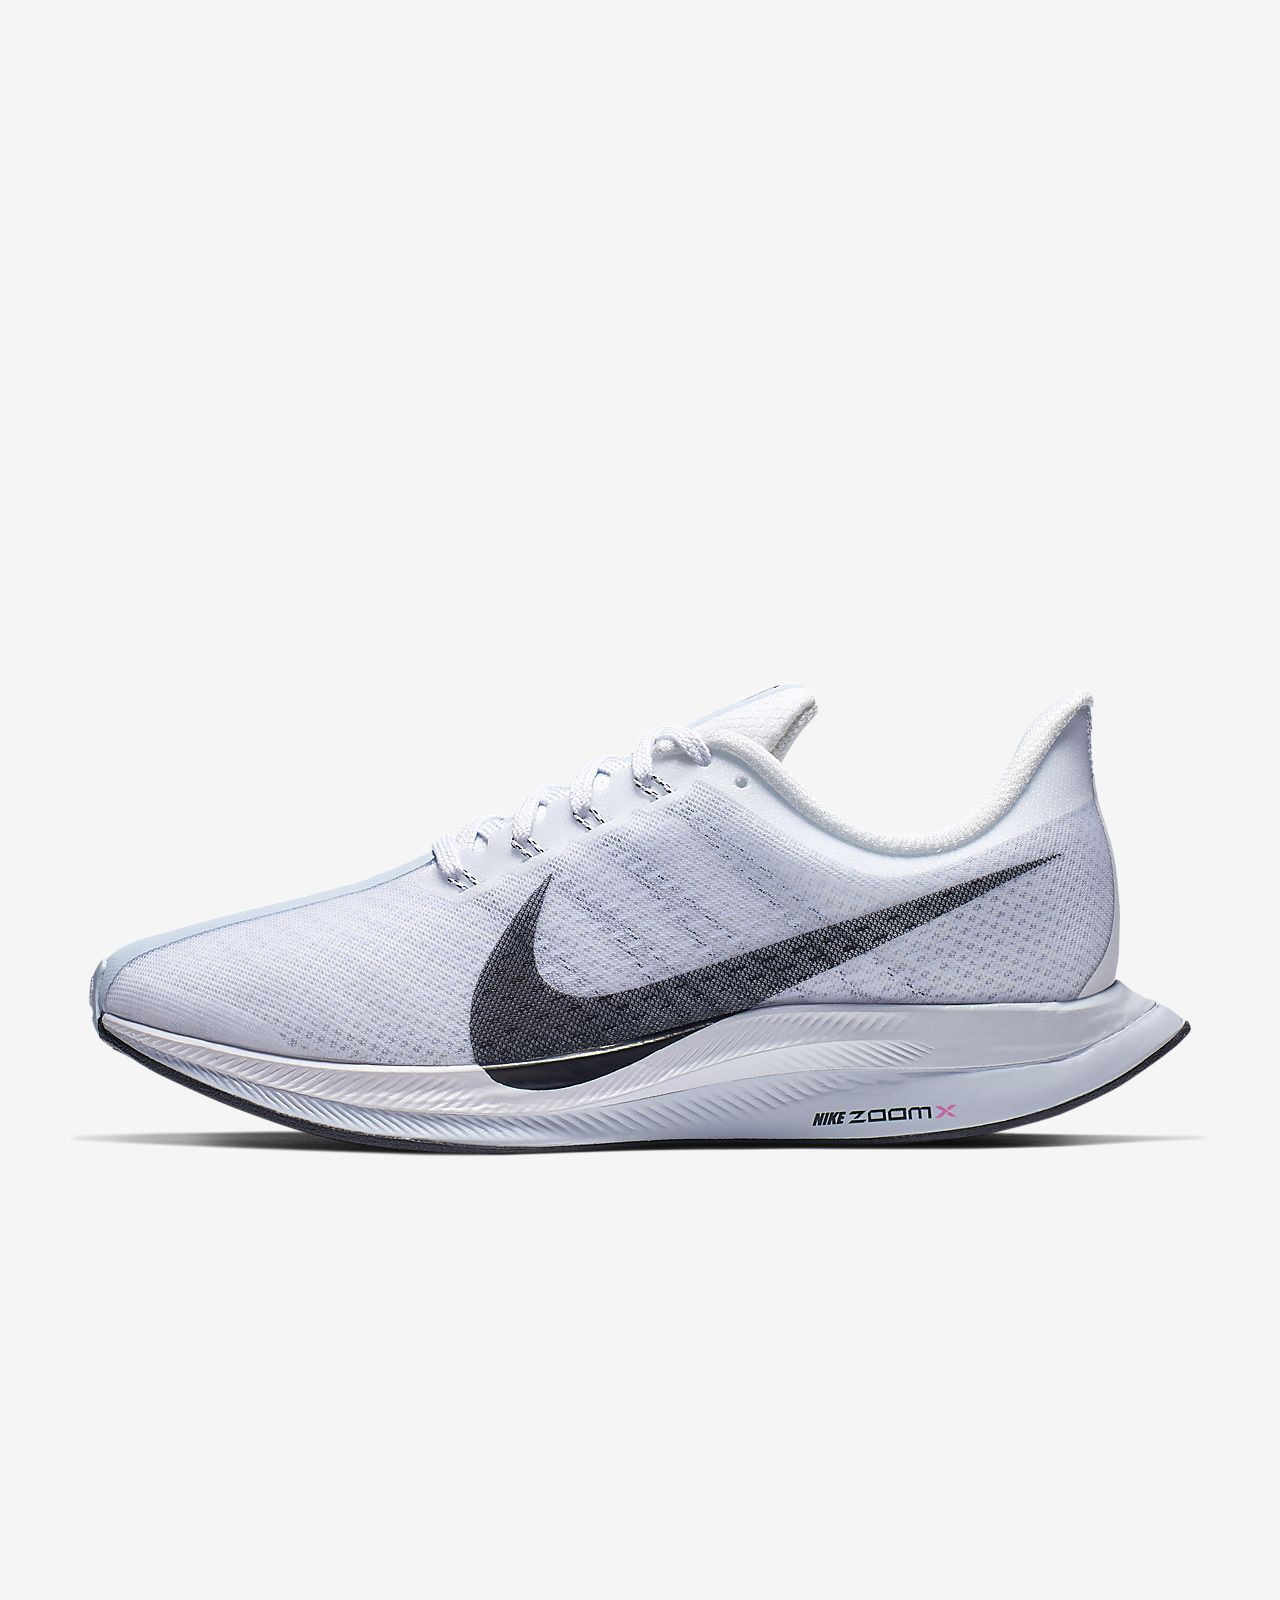 6263617e5ae Nike Zoom Pegasus Turbo Women s Running Shoe. Nike.com AU